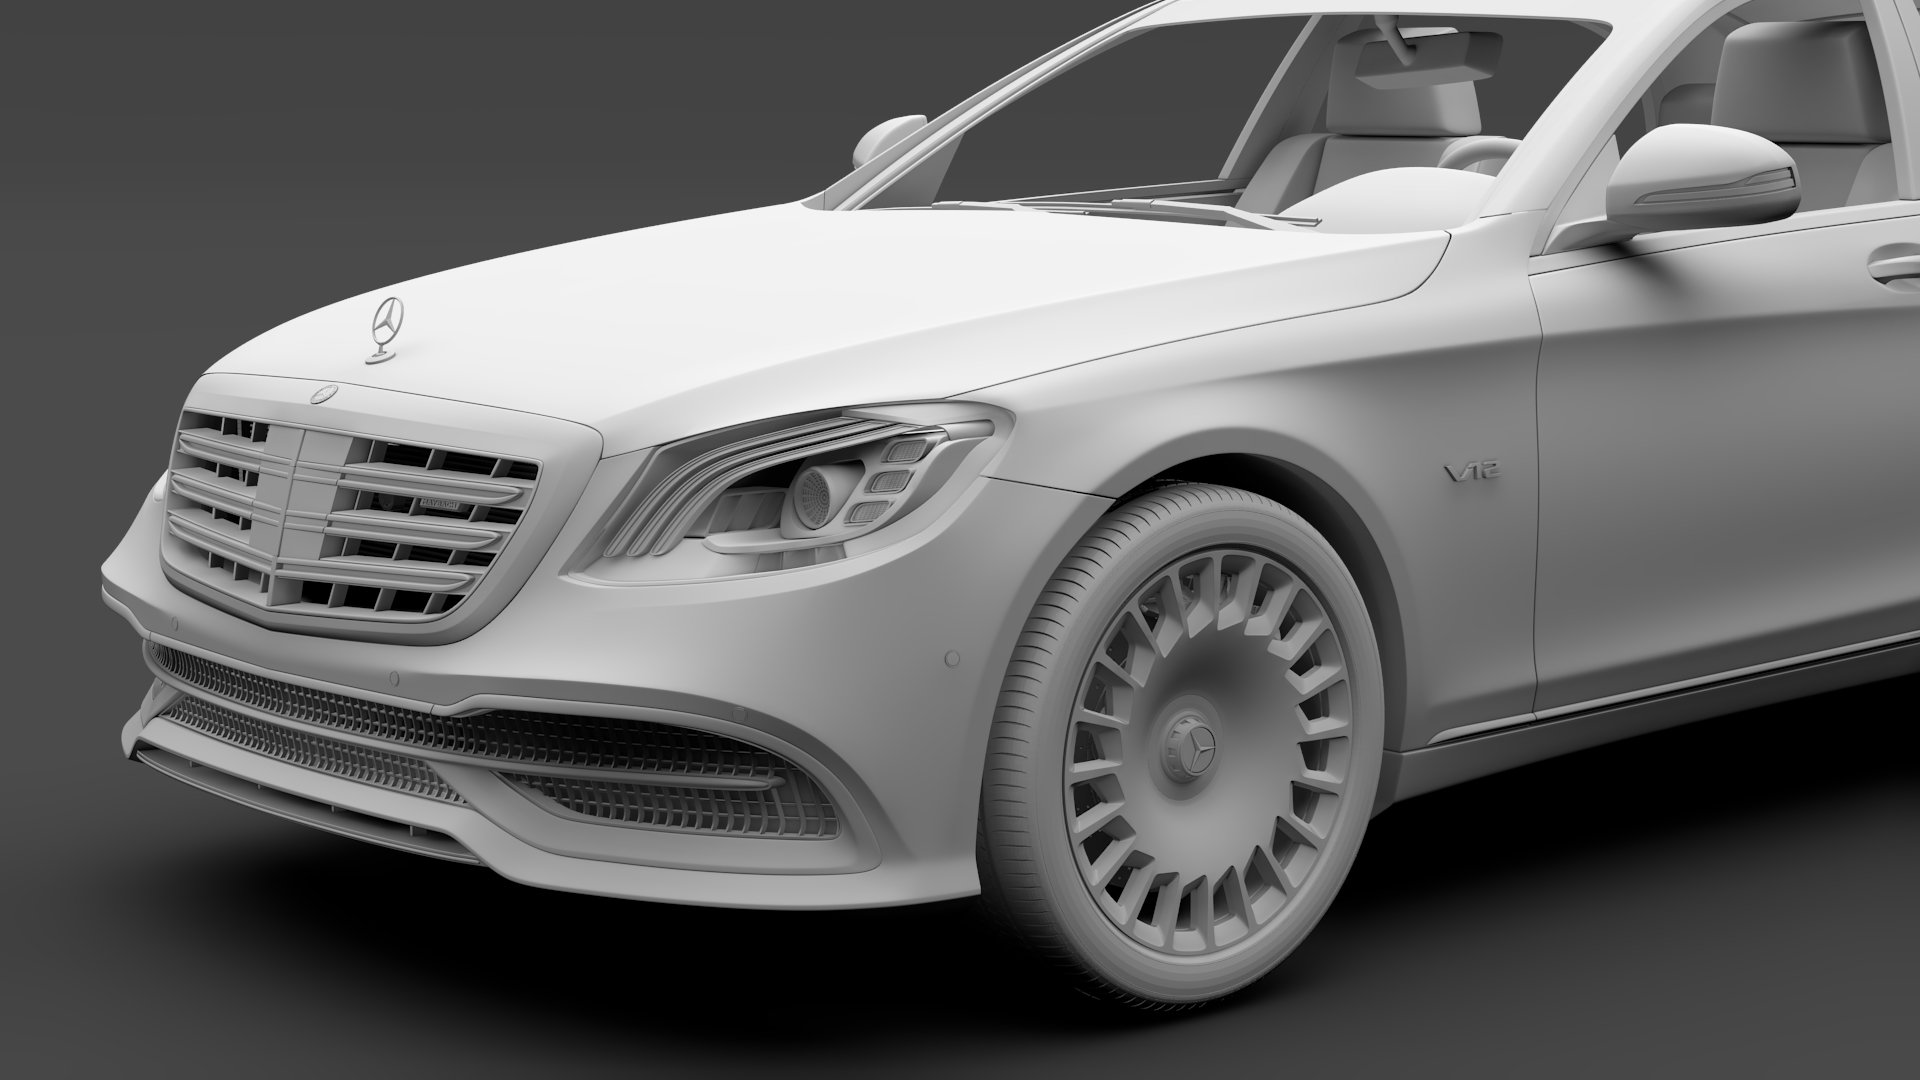 mercedes maybach s 650 x222 2018 3d model 3ds max fbx c4d lwo ma mb hrc xsi obj 284543